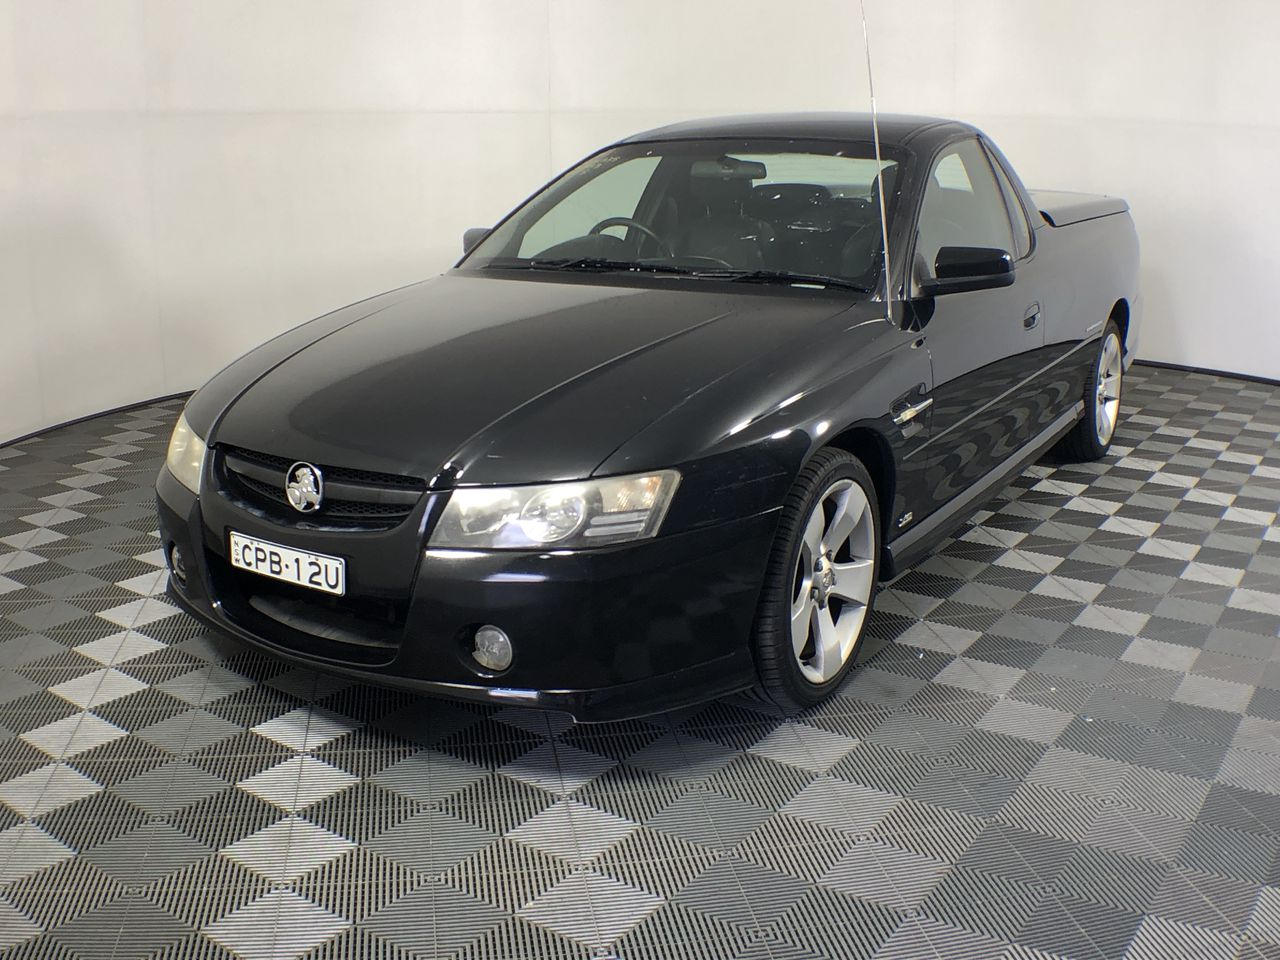 2006 Holden Commodore SS THUNDER VZ Manual Ute